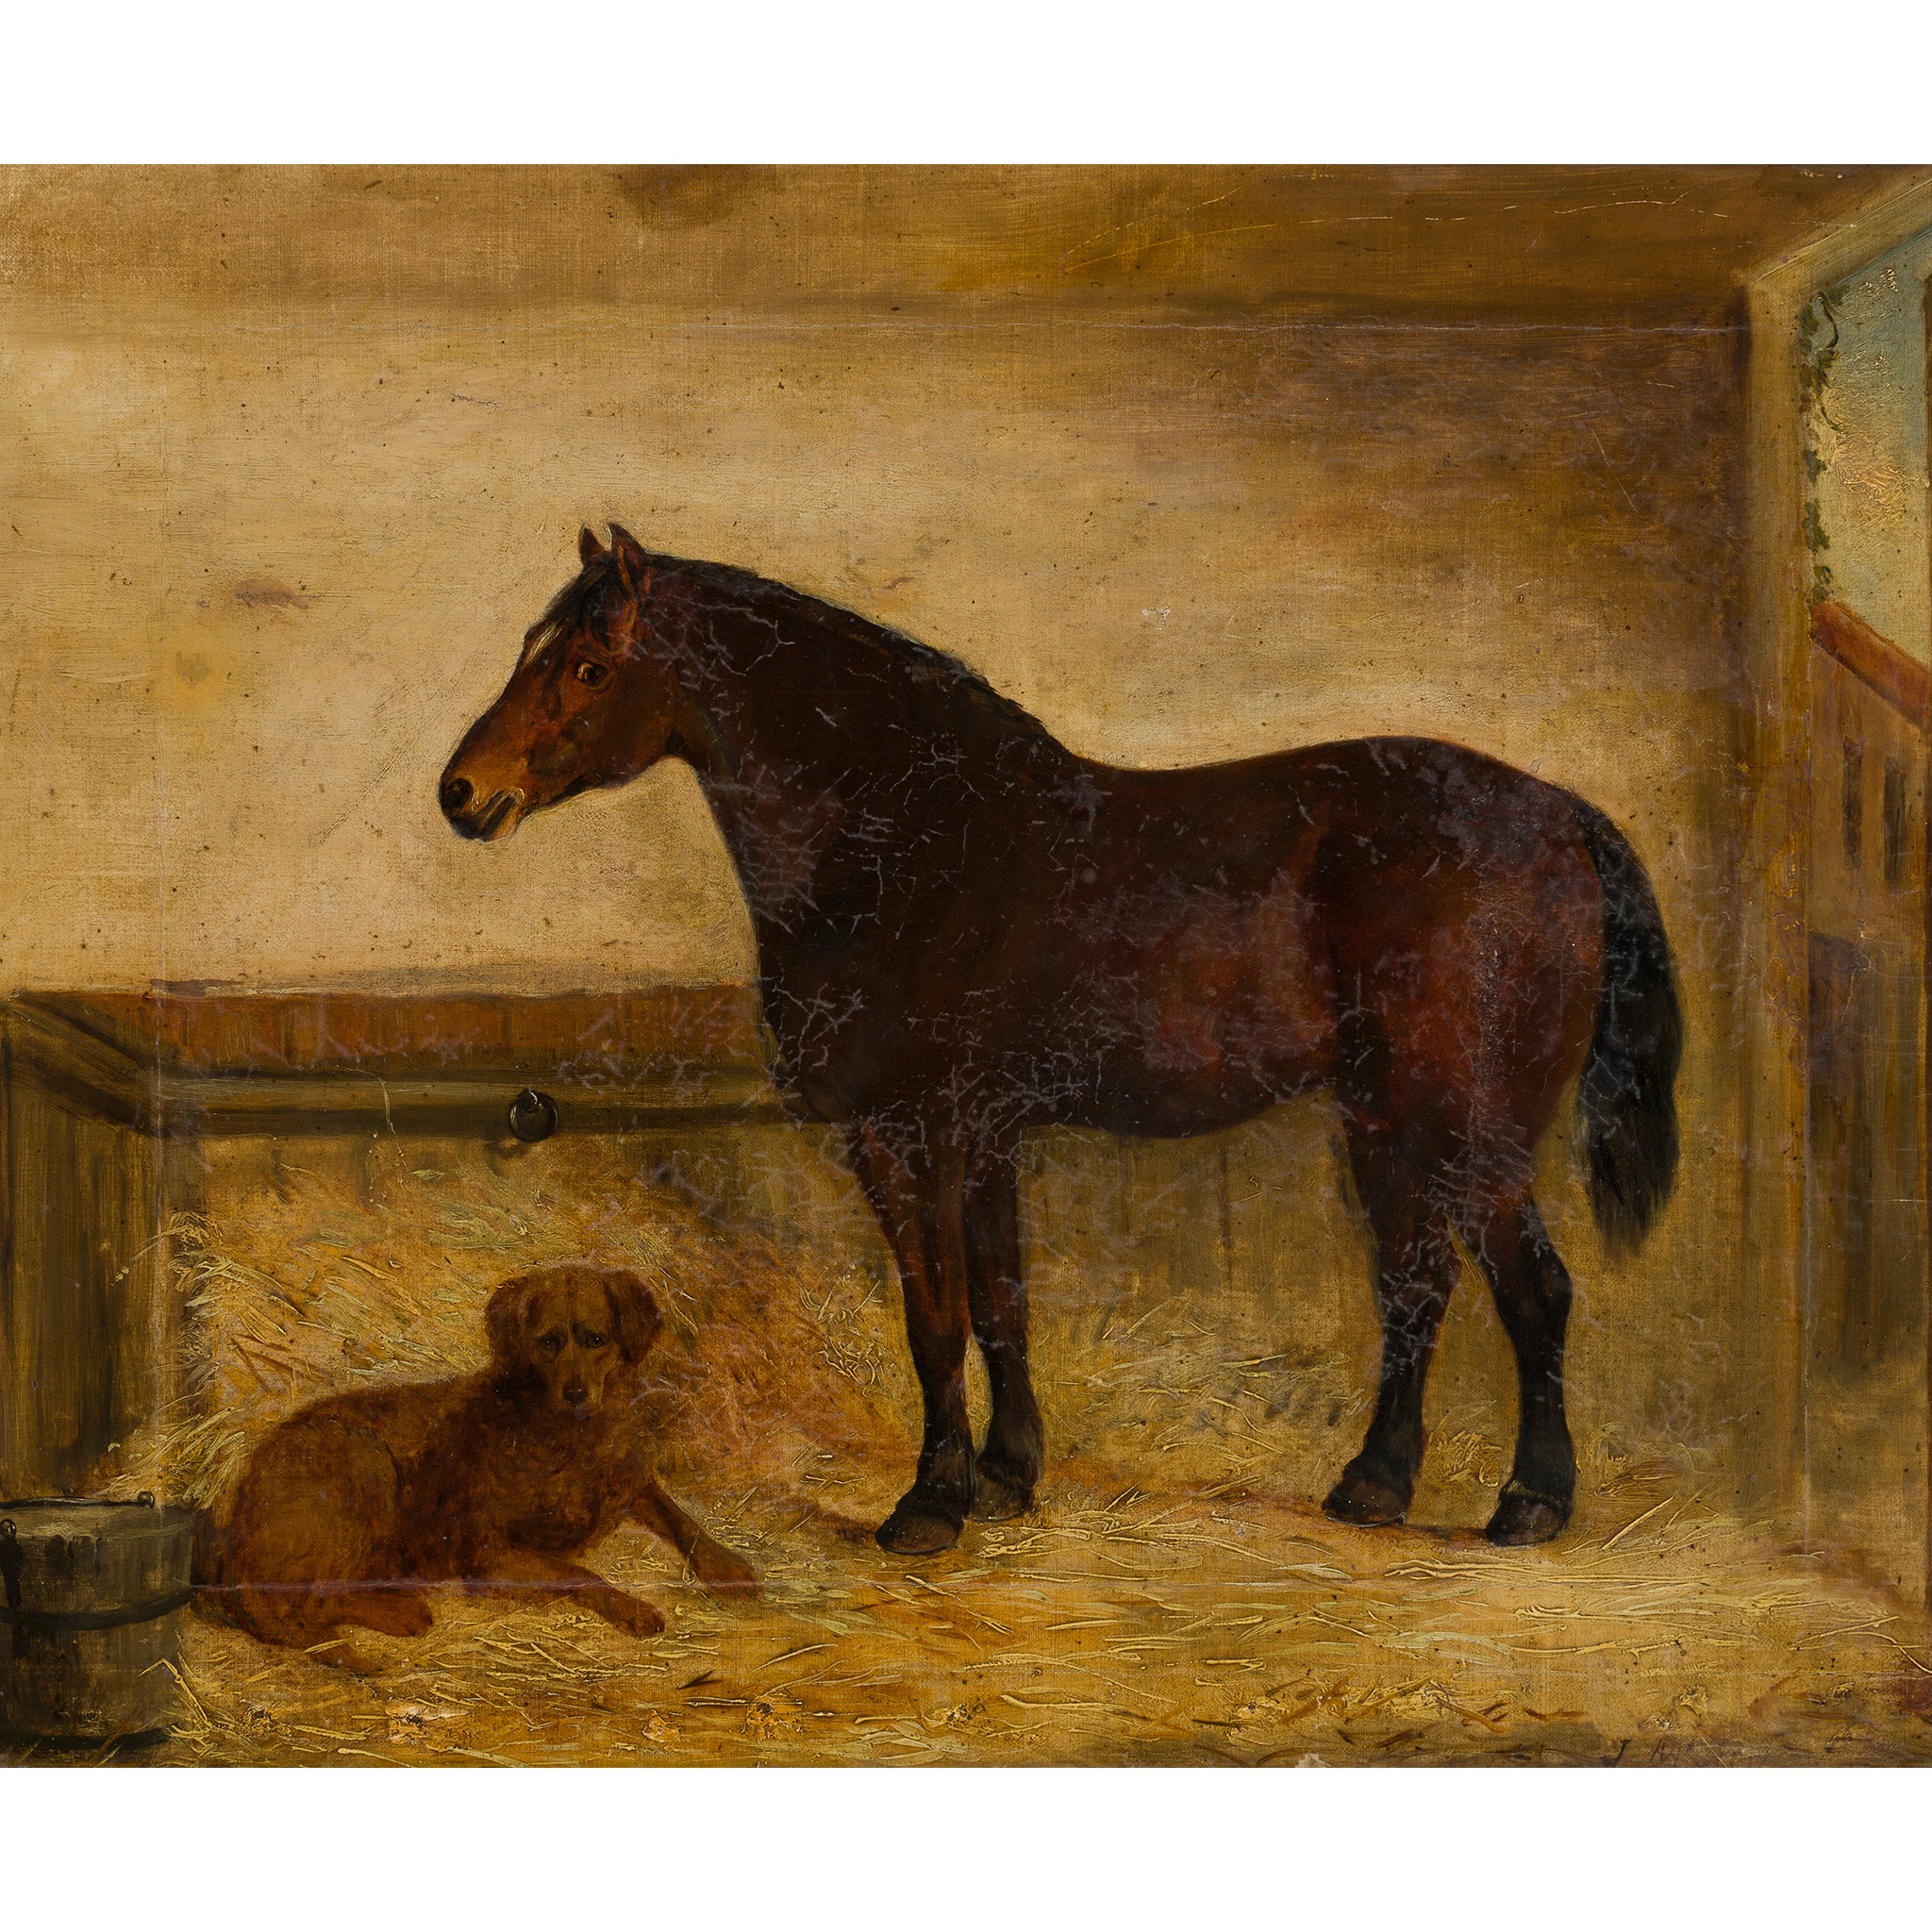 19TH CENTURY ENGLISH SCHOOL DARK BAY COB WITH A RETREIVER IN A STABLE